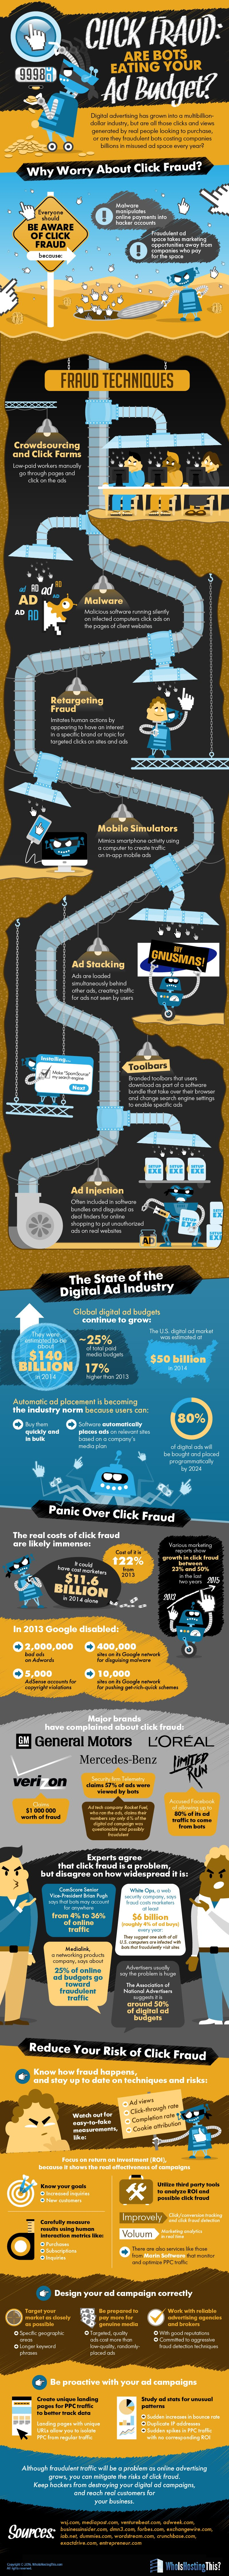 Click Fraud: Are Bots Stealing Your Ad Dollars? - #infographic